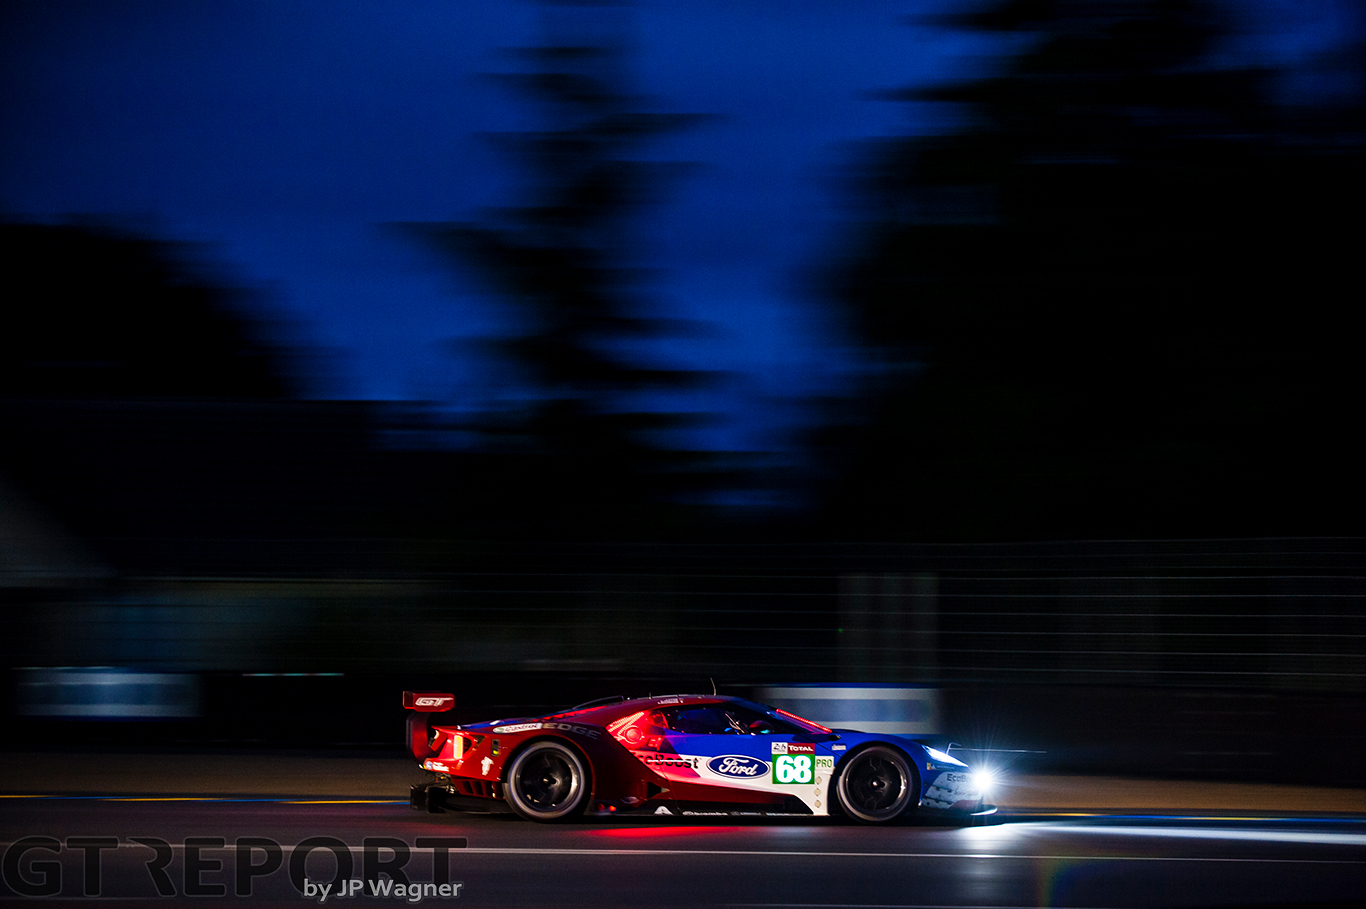 Le Mans 24 Hours mid-race update